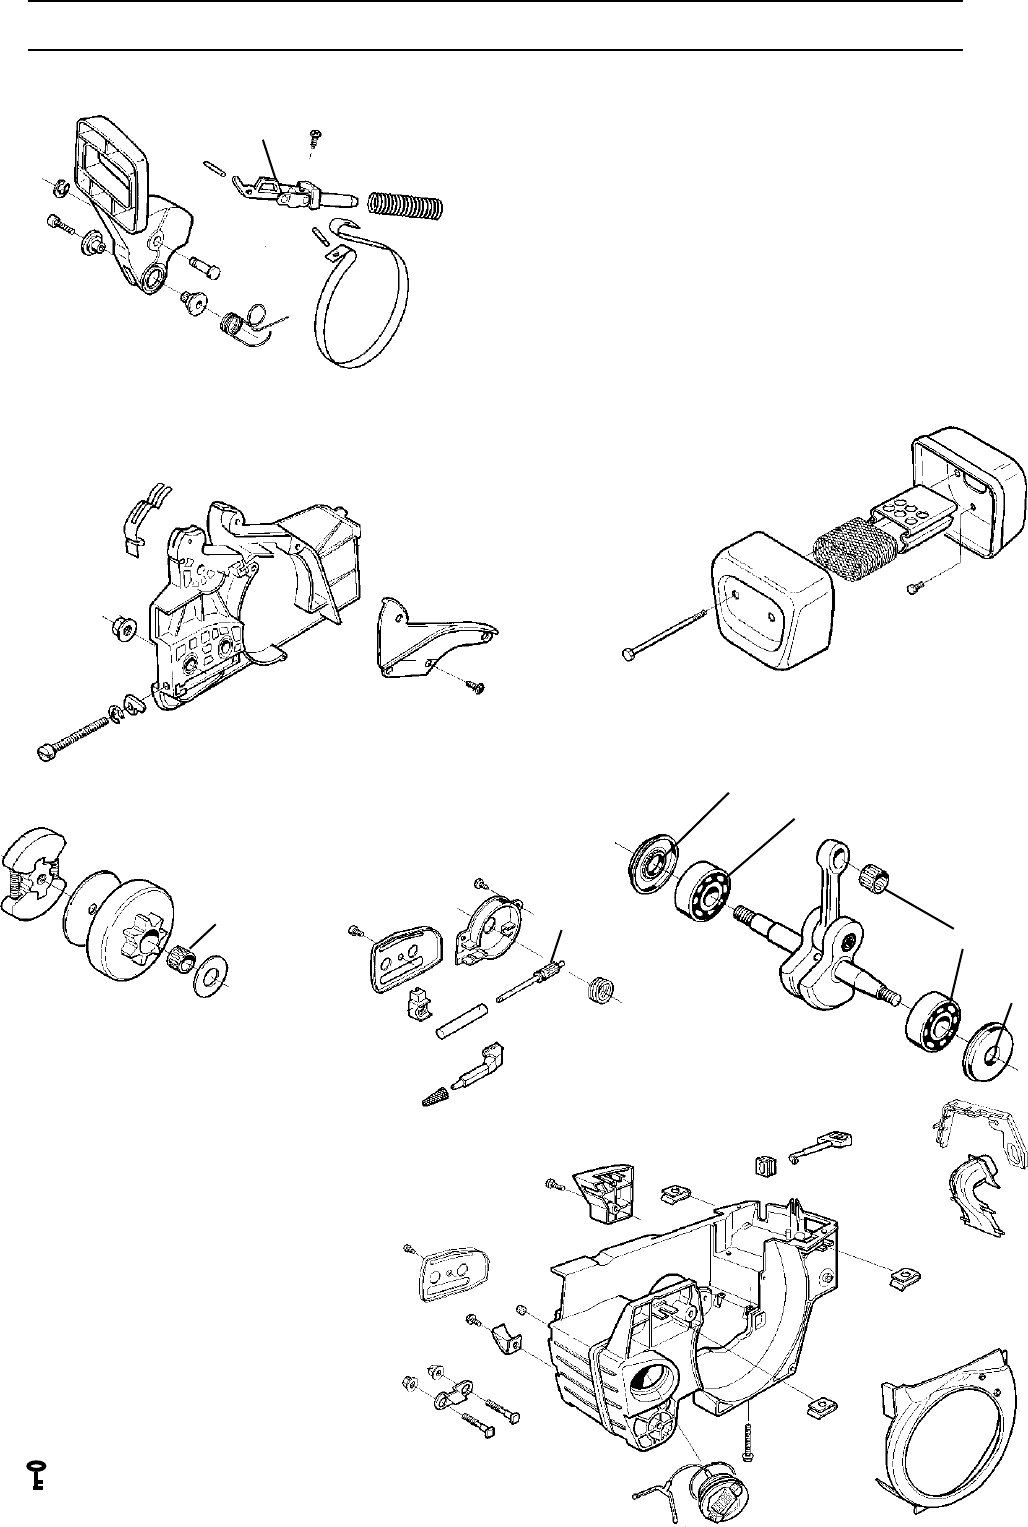 Page 20 of Husqvarna Chainsaw 1018855-26 User Guide